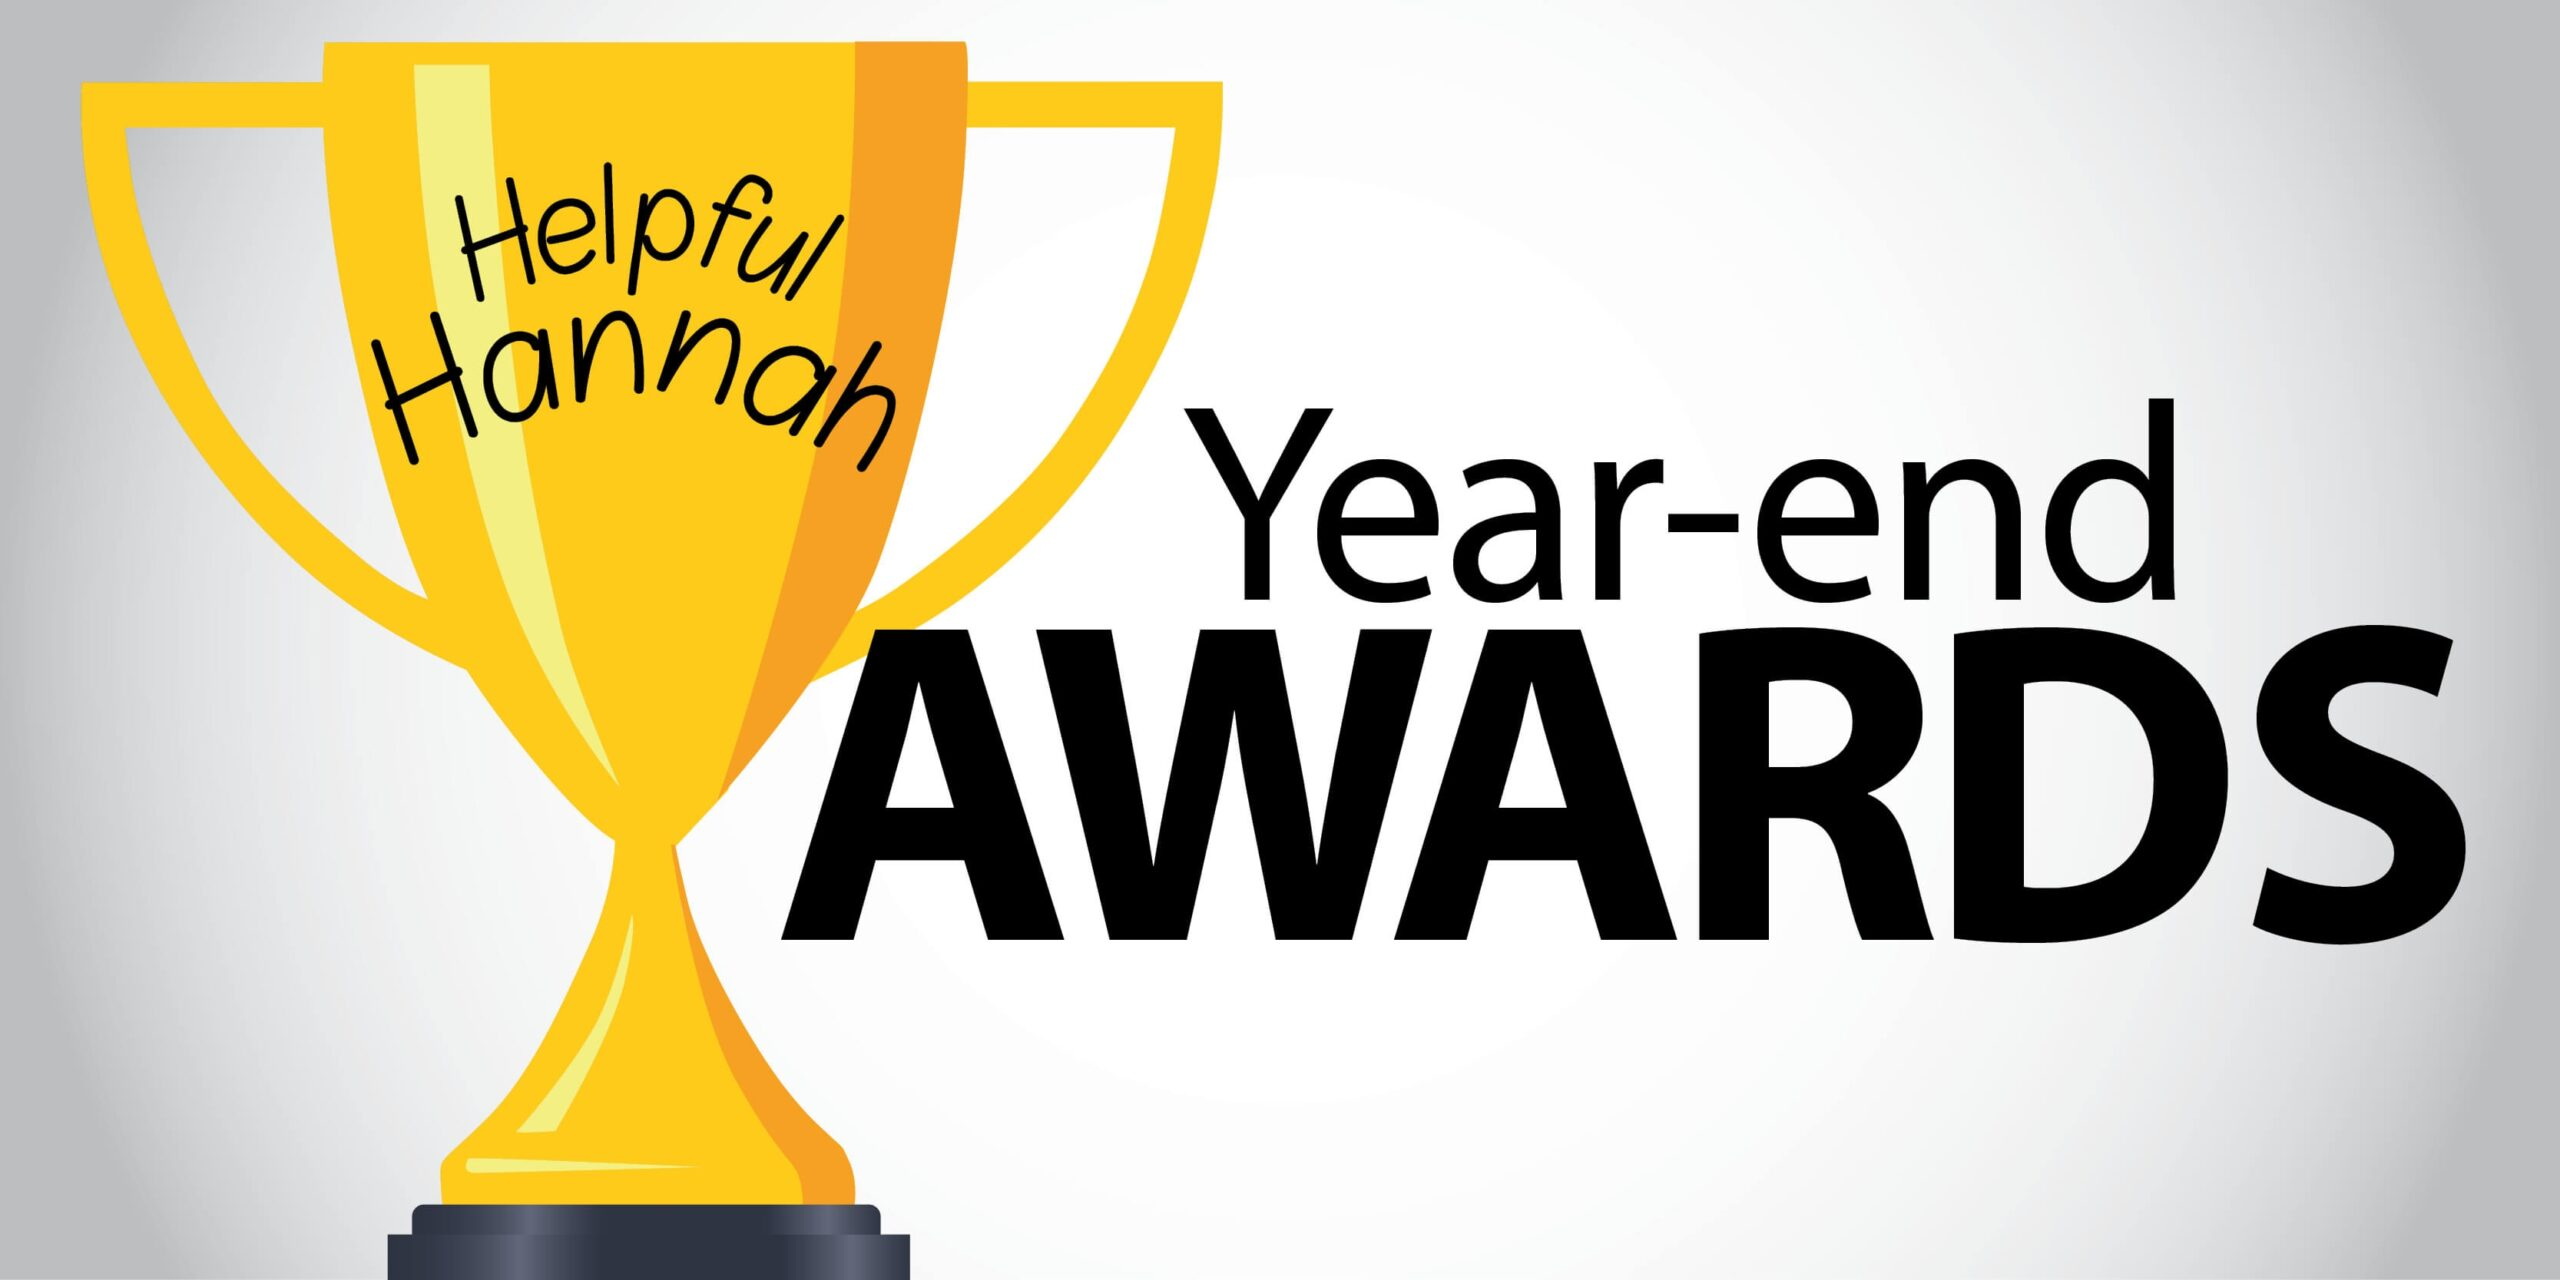 Review Phonics with Year-End Awards